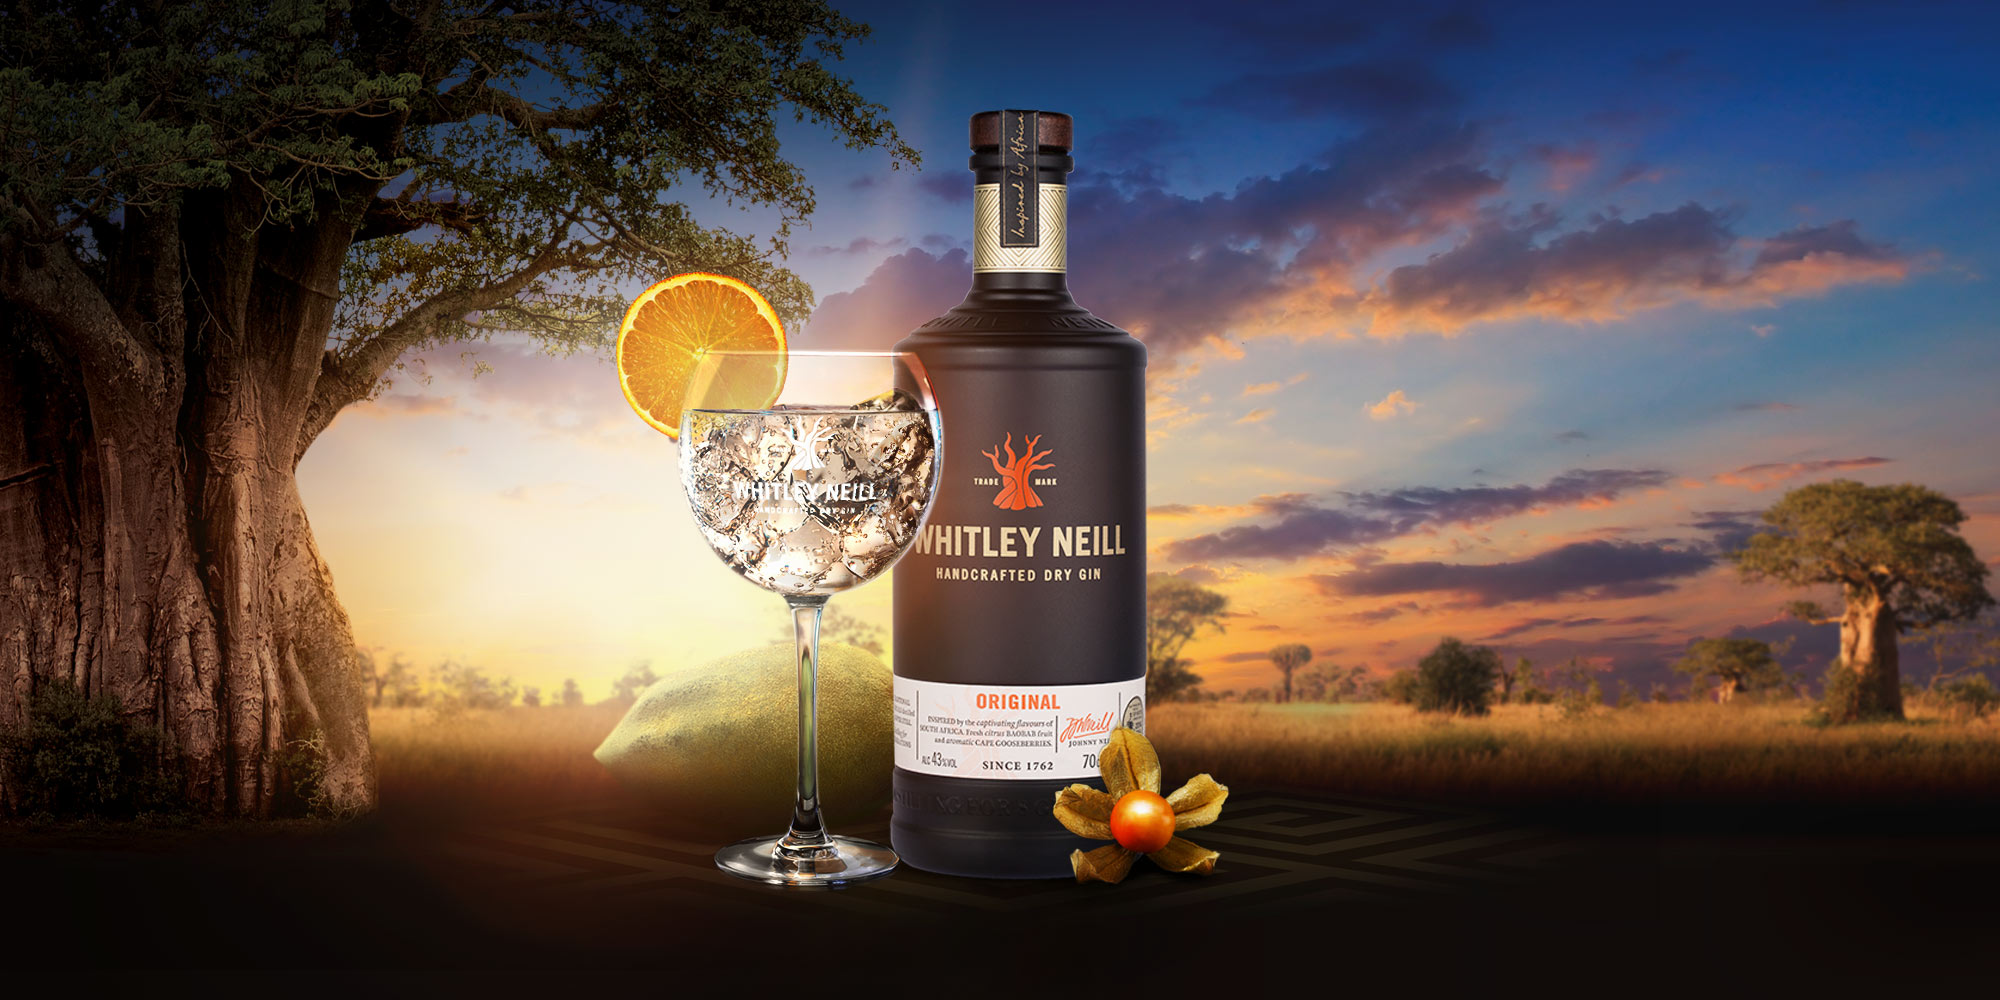 Whitley Neill Dry Gin sat on an African background